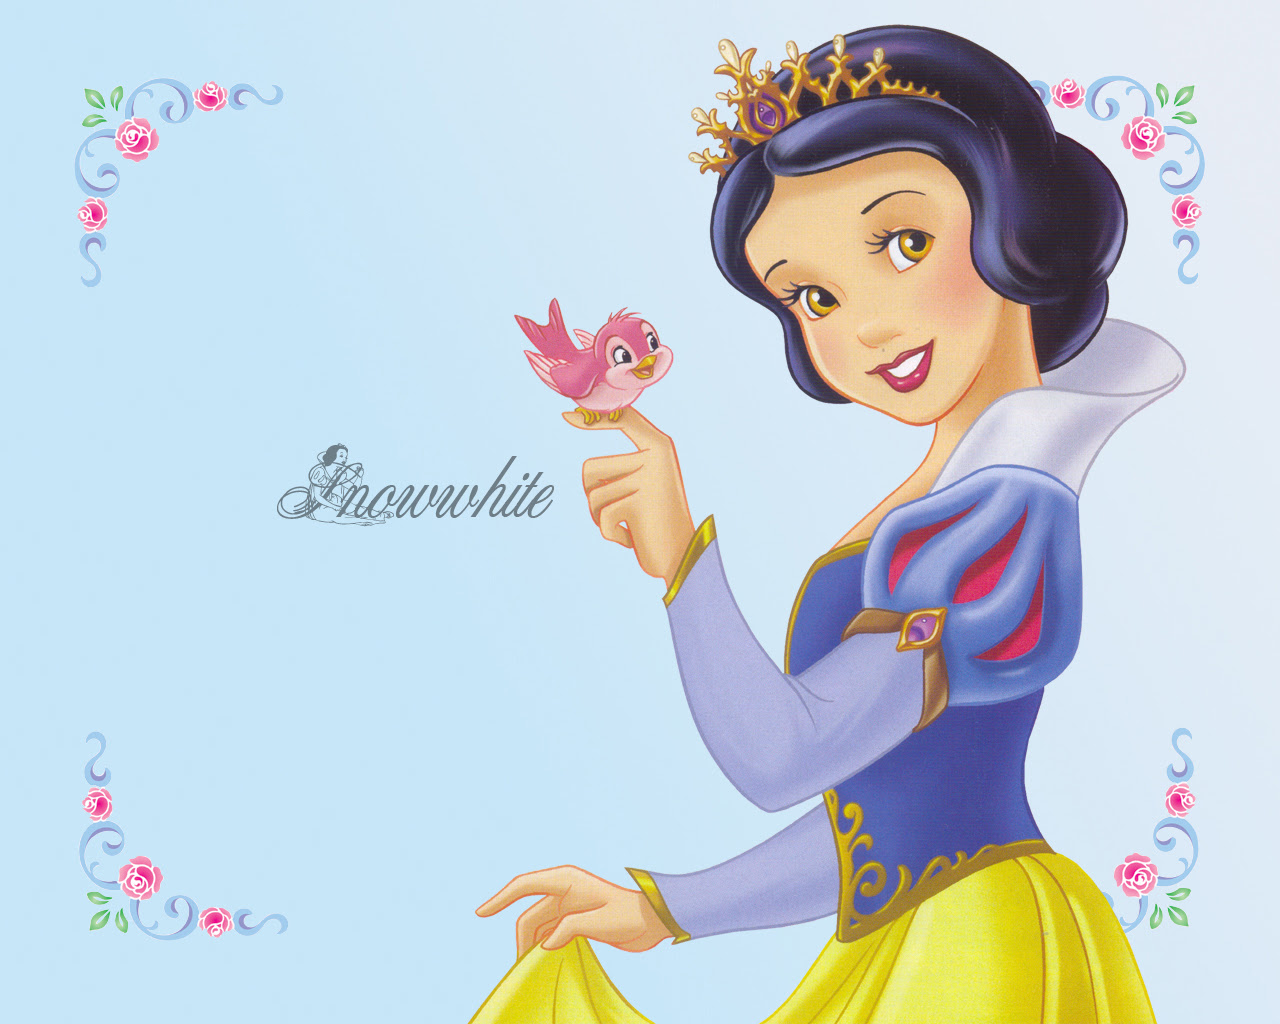 Princess Snow White Disney Princesas Wallpaper